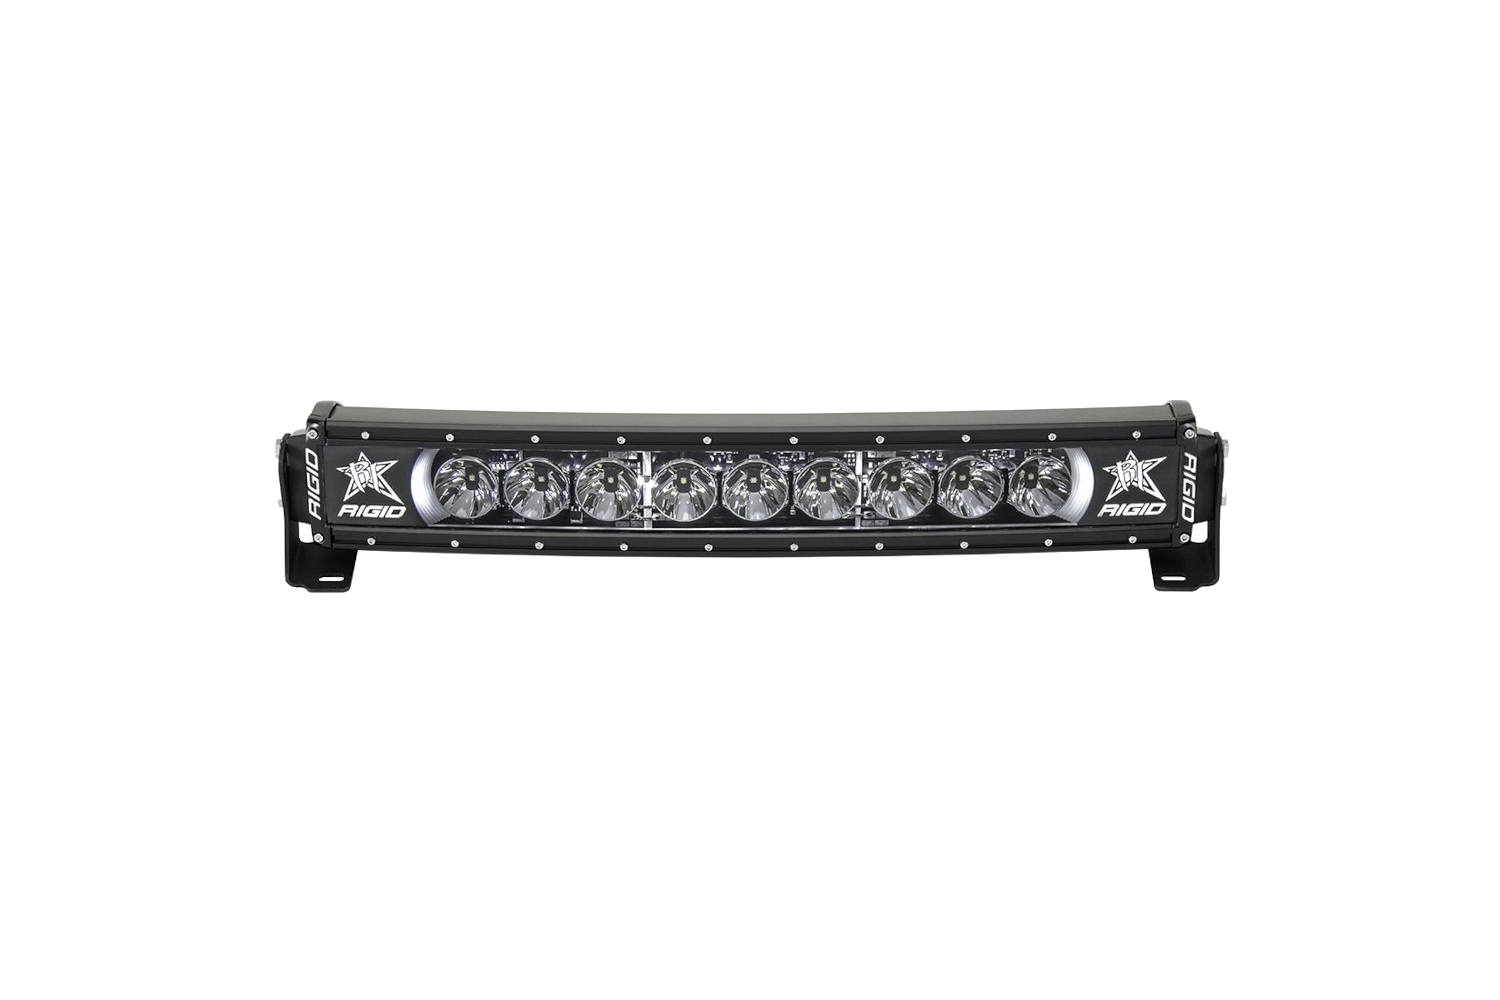 Rigid Industries Radiance light bar that accommodates the Jeep Gladiator.